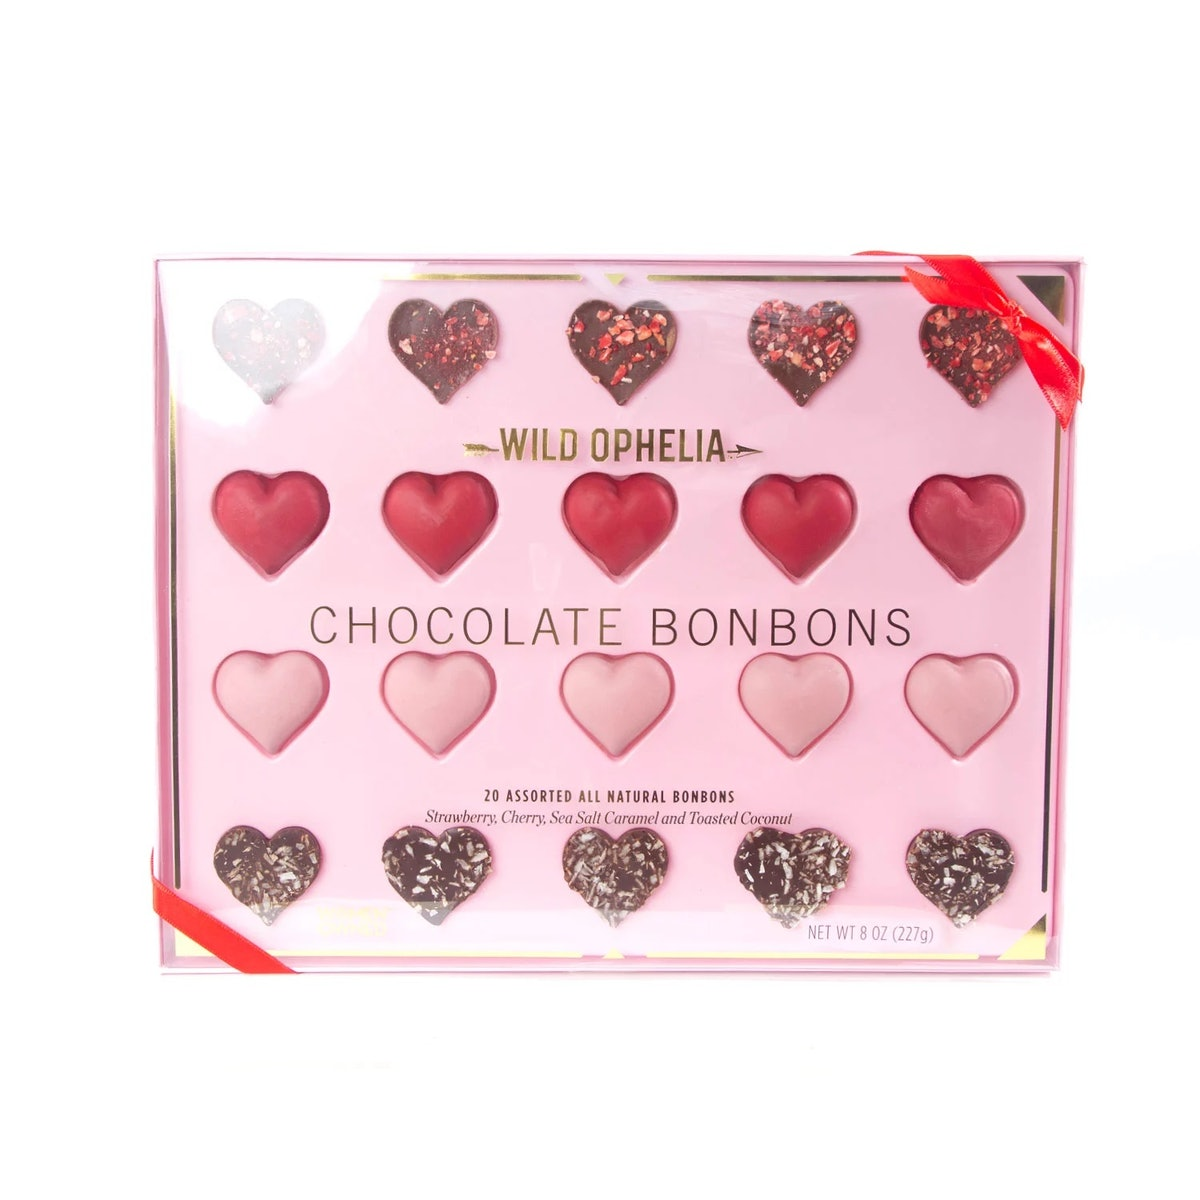 Sam's Club is selling the Wild Ophelia Chocolate Bonbons box for Valentine's Day 2021.